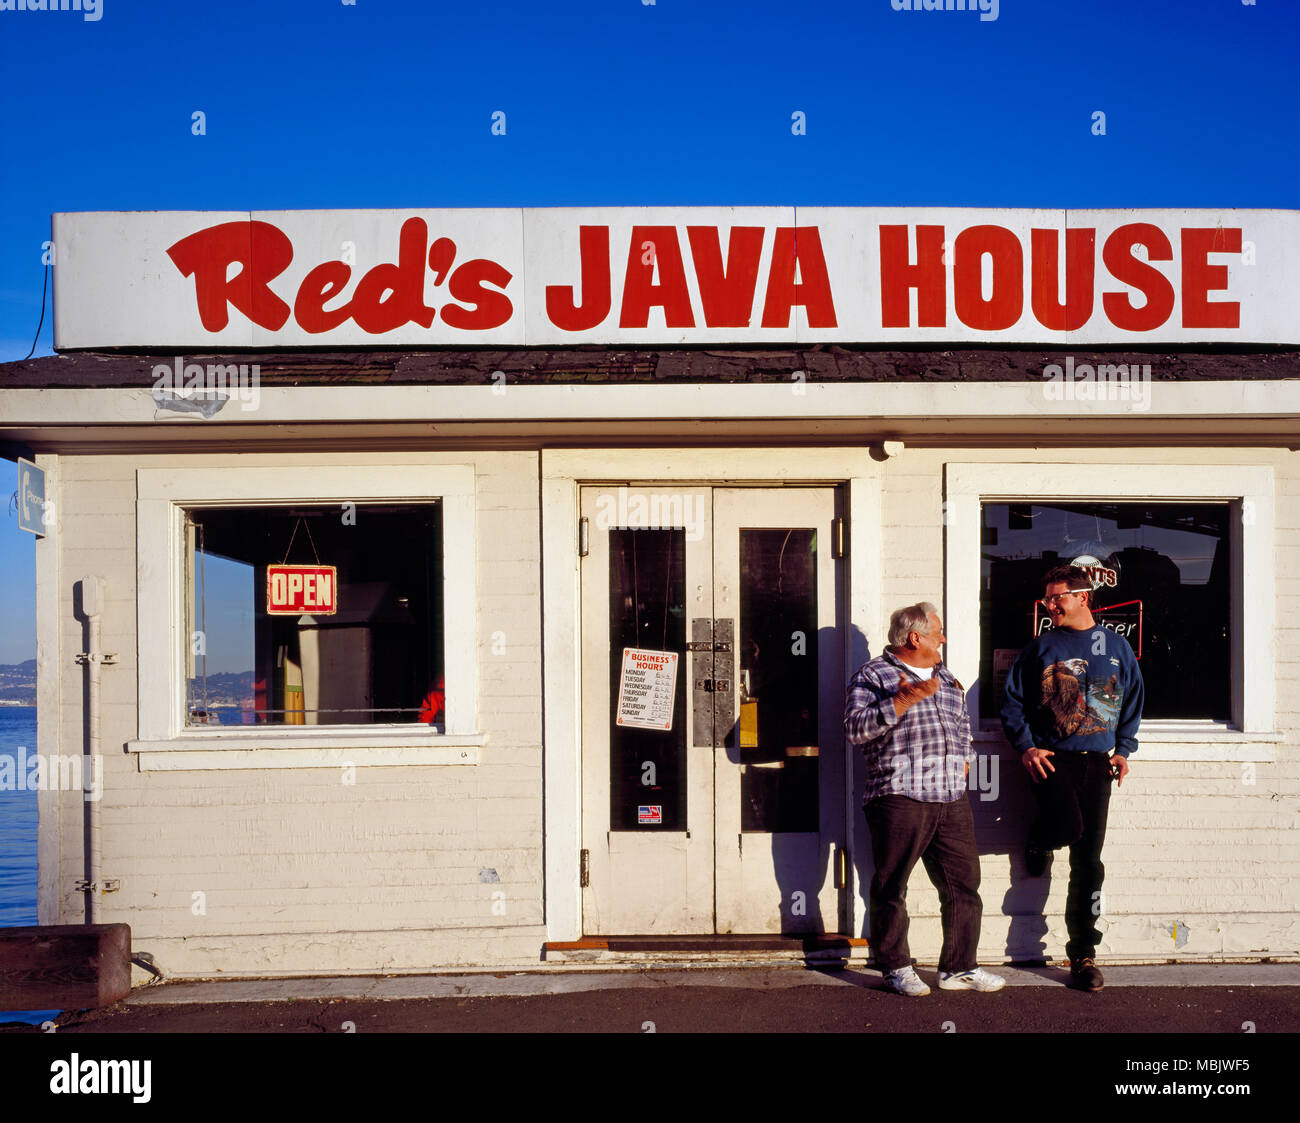 Red's Java House - Stock Image